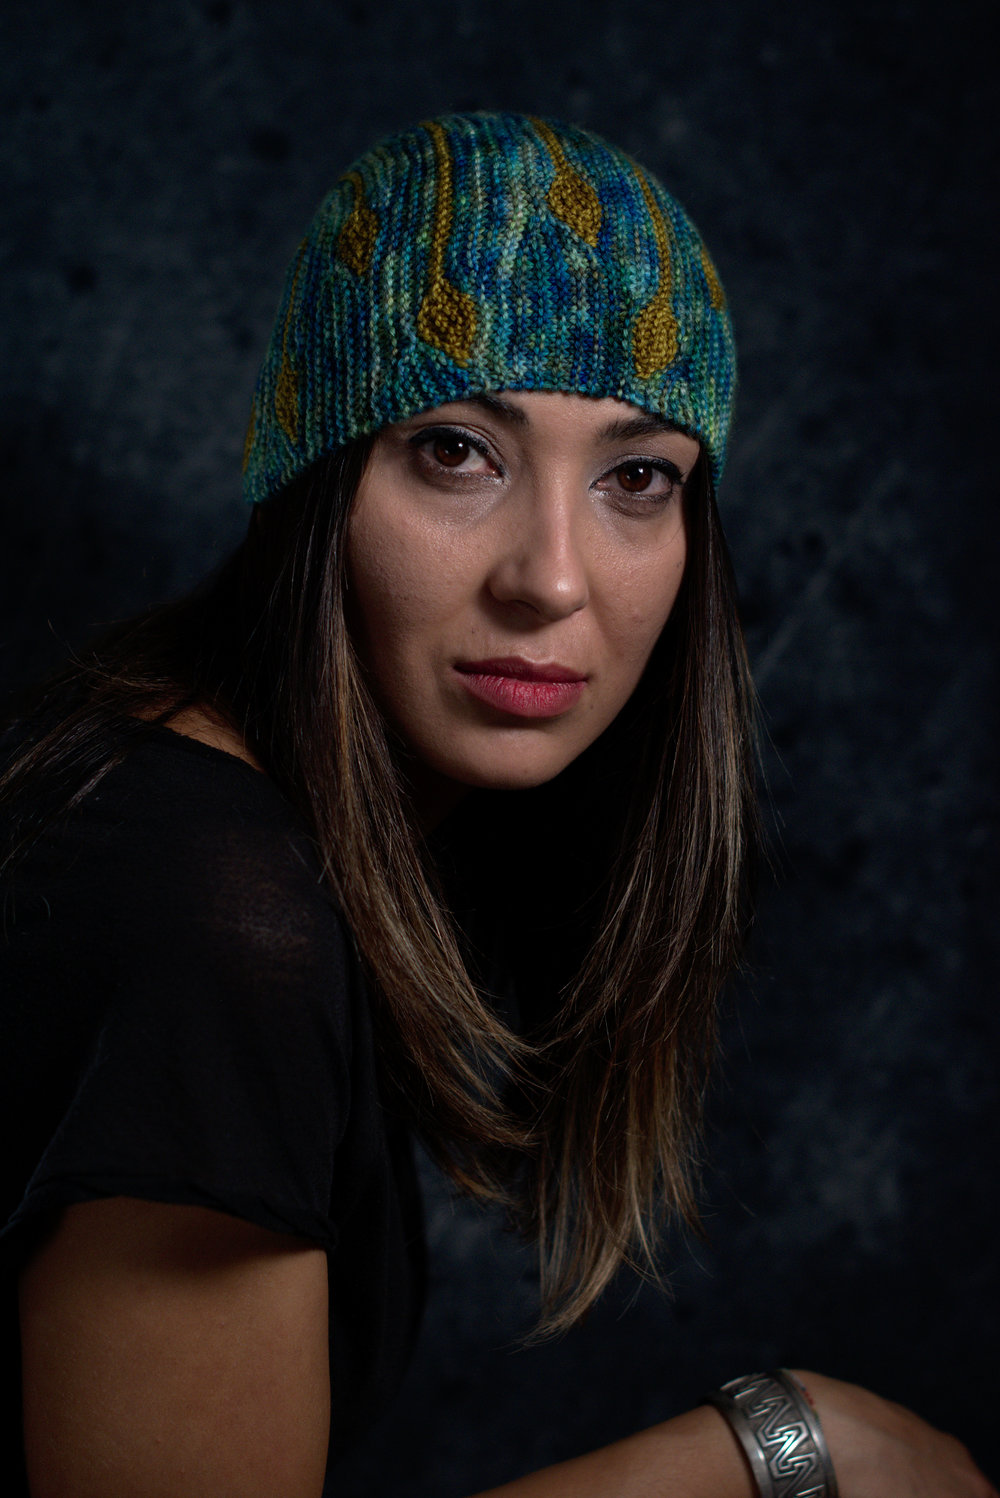 Bilateral sideways knit short row colourwork hat knitting pattern